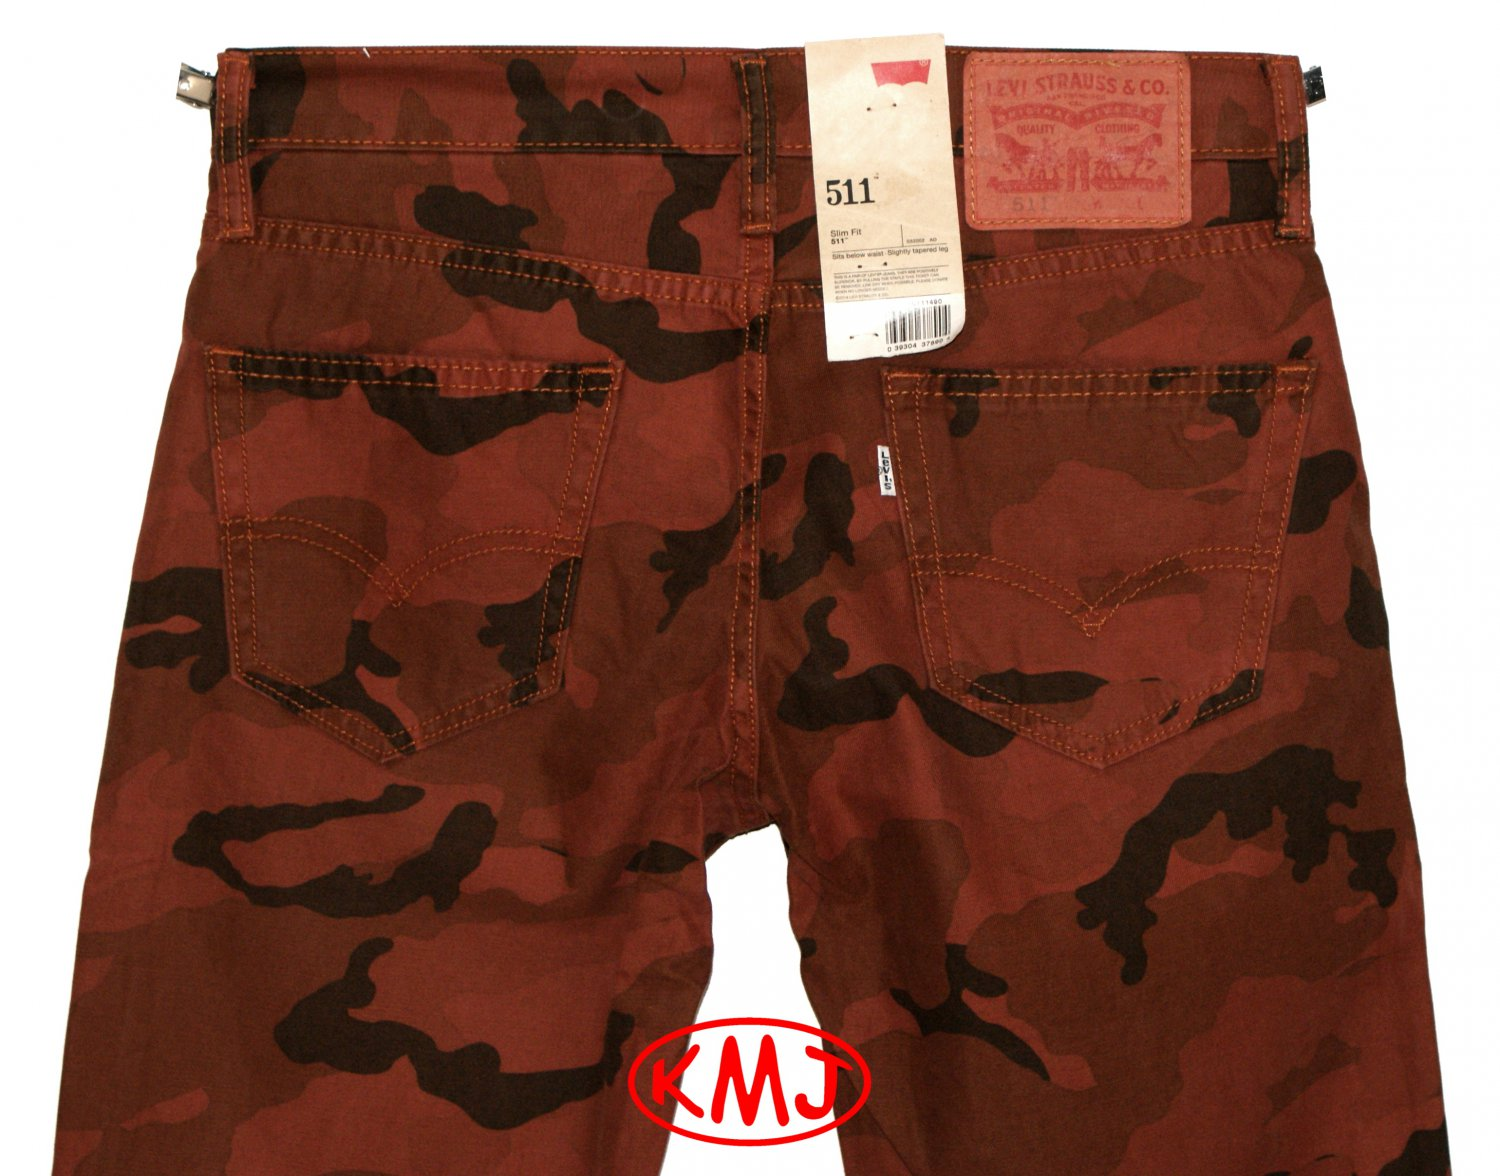 Brand New LEVI'S 511 SLIM FIT CAMO CAMOUFLAGE OVERDYE PICA RUST TWILL PANTS in size W29 L32